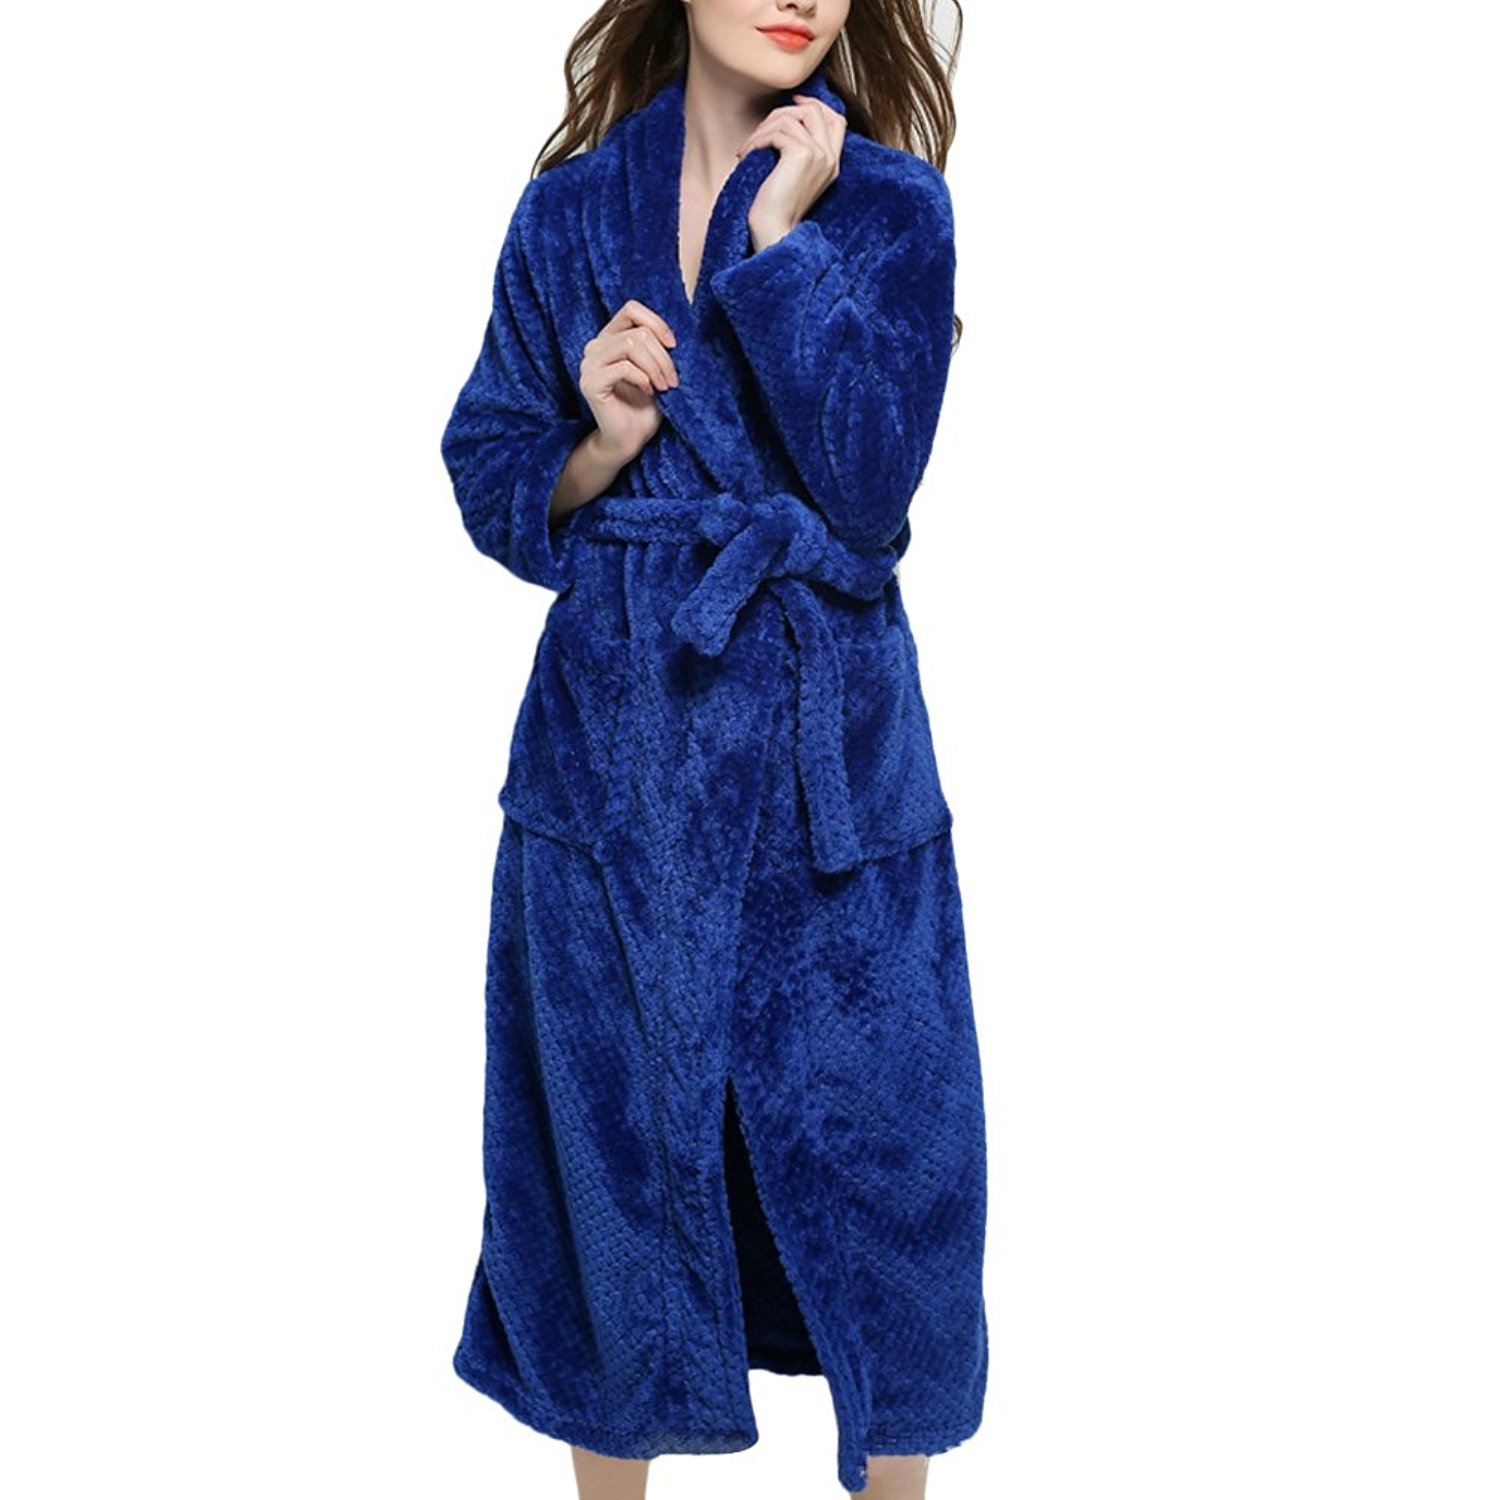 268c040bc0 Get Quotations · Zhhlinyuan Mens Ladies Waffle Coral Fleece Bath Robe  Dressing Gown Kimono Bathrobe